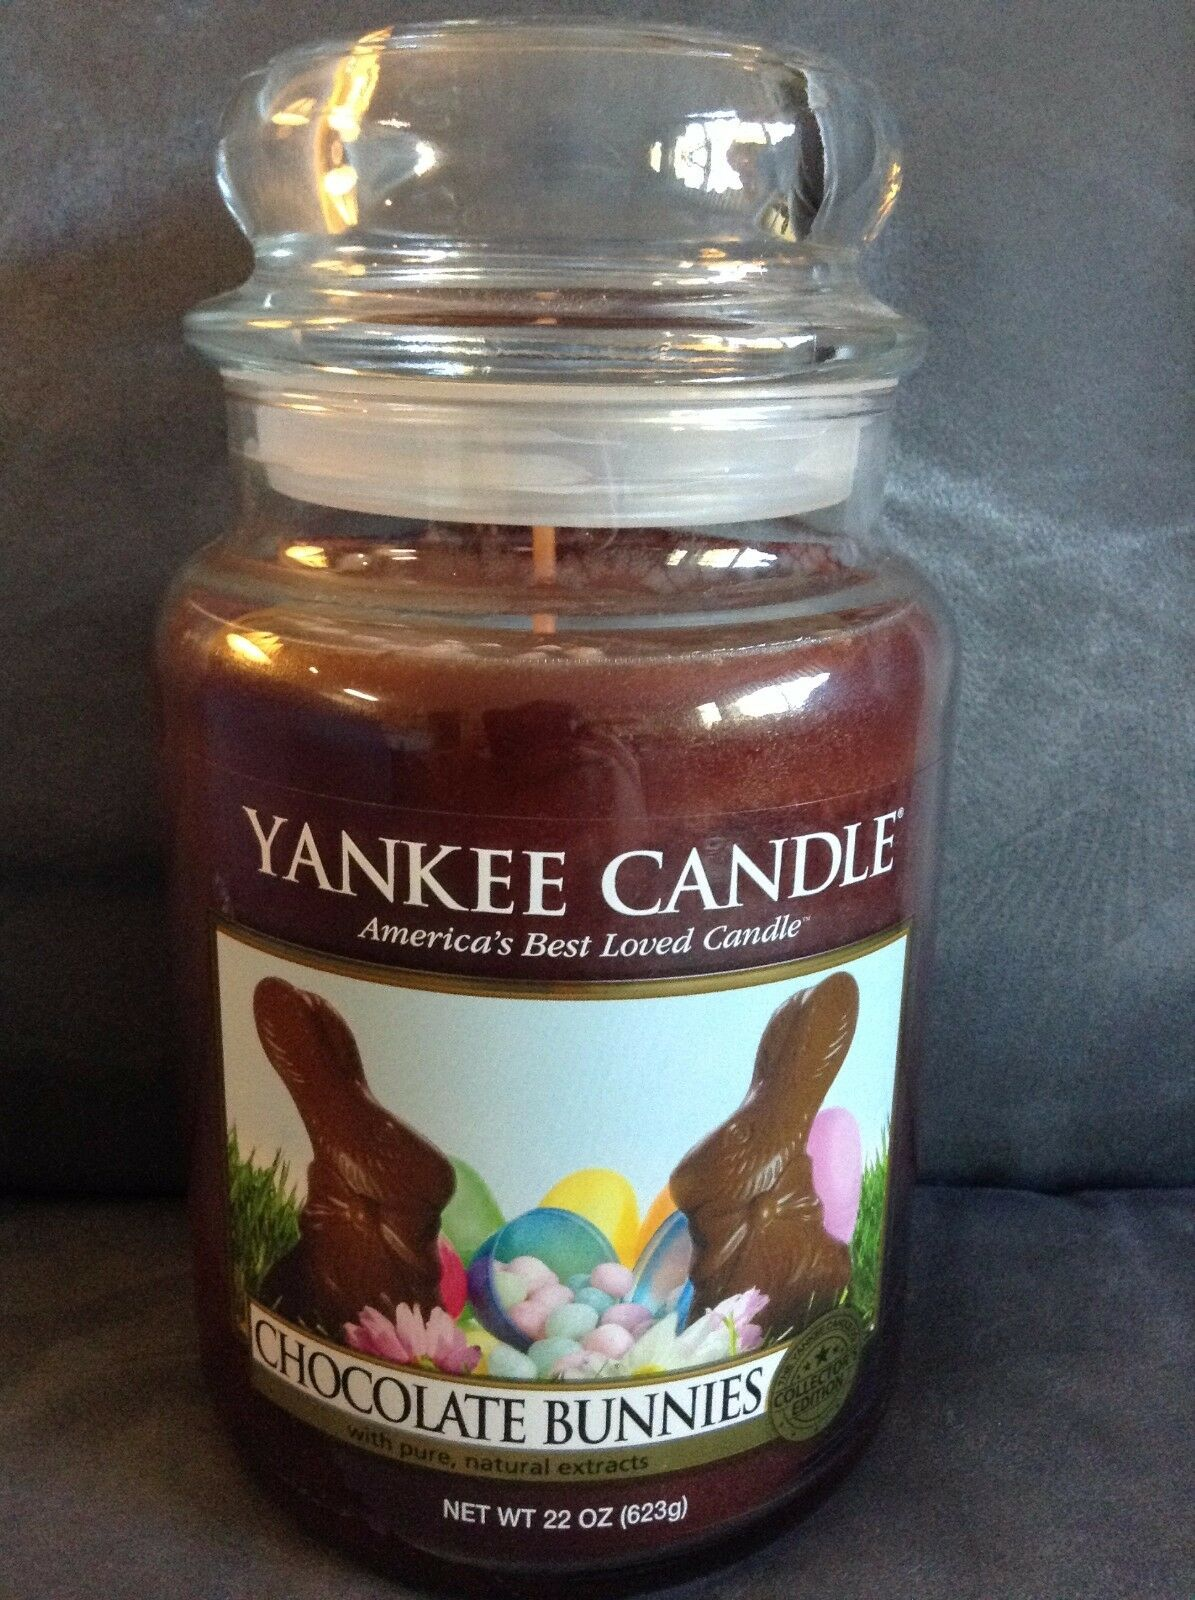 YANKEE CANDLE CHOCOLATE BUNNIES 22 OZ EASTER BUNNY JAR CANDLE - BRAND NEW